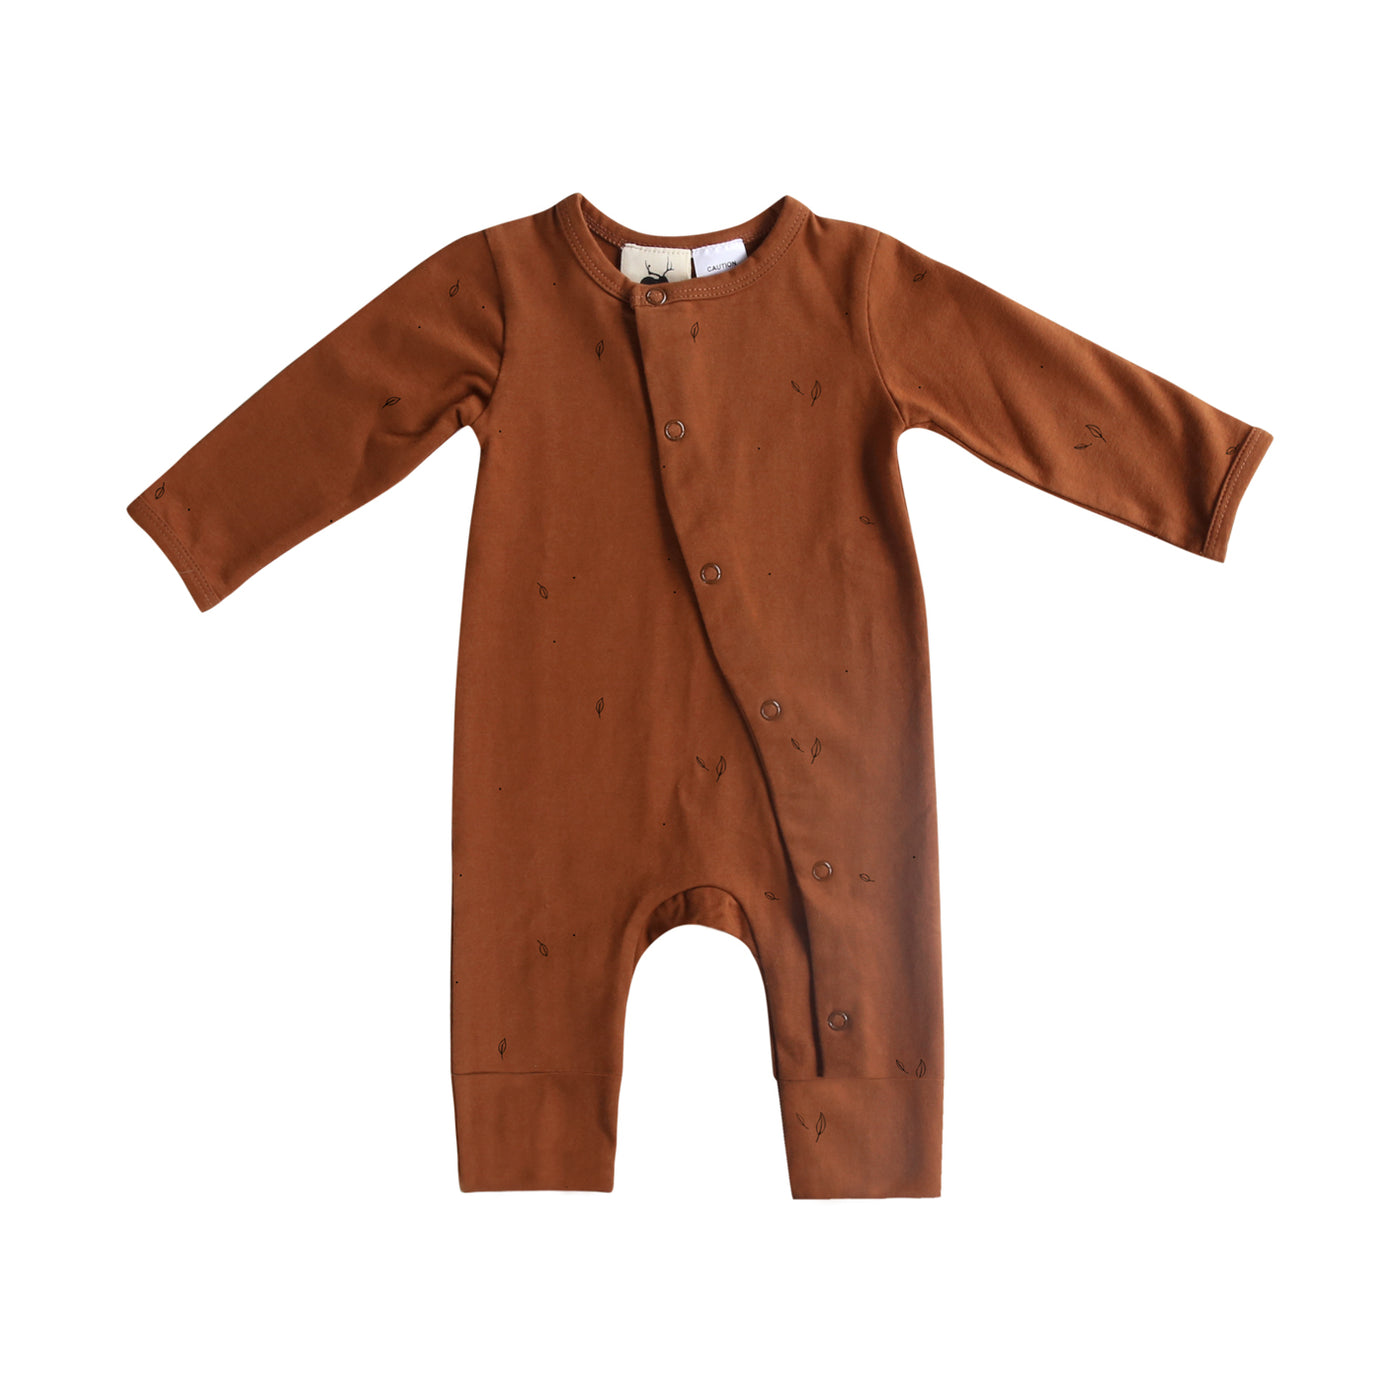 Toffee Romper (last one, size 0-3 months)